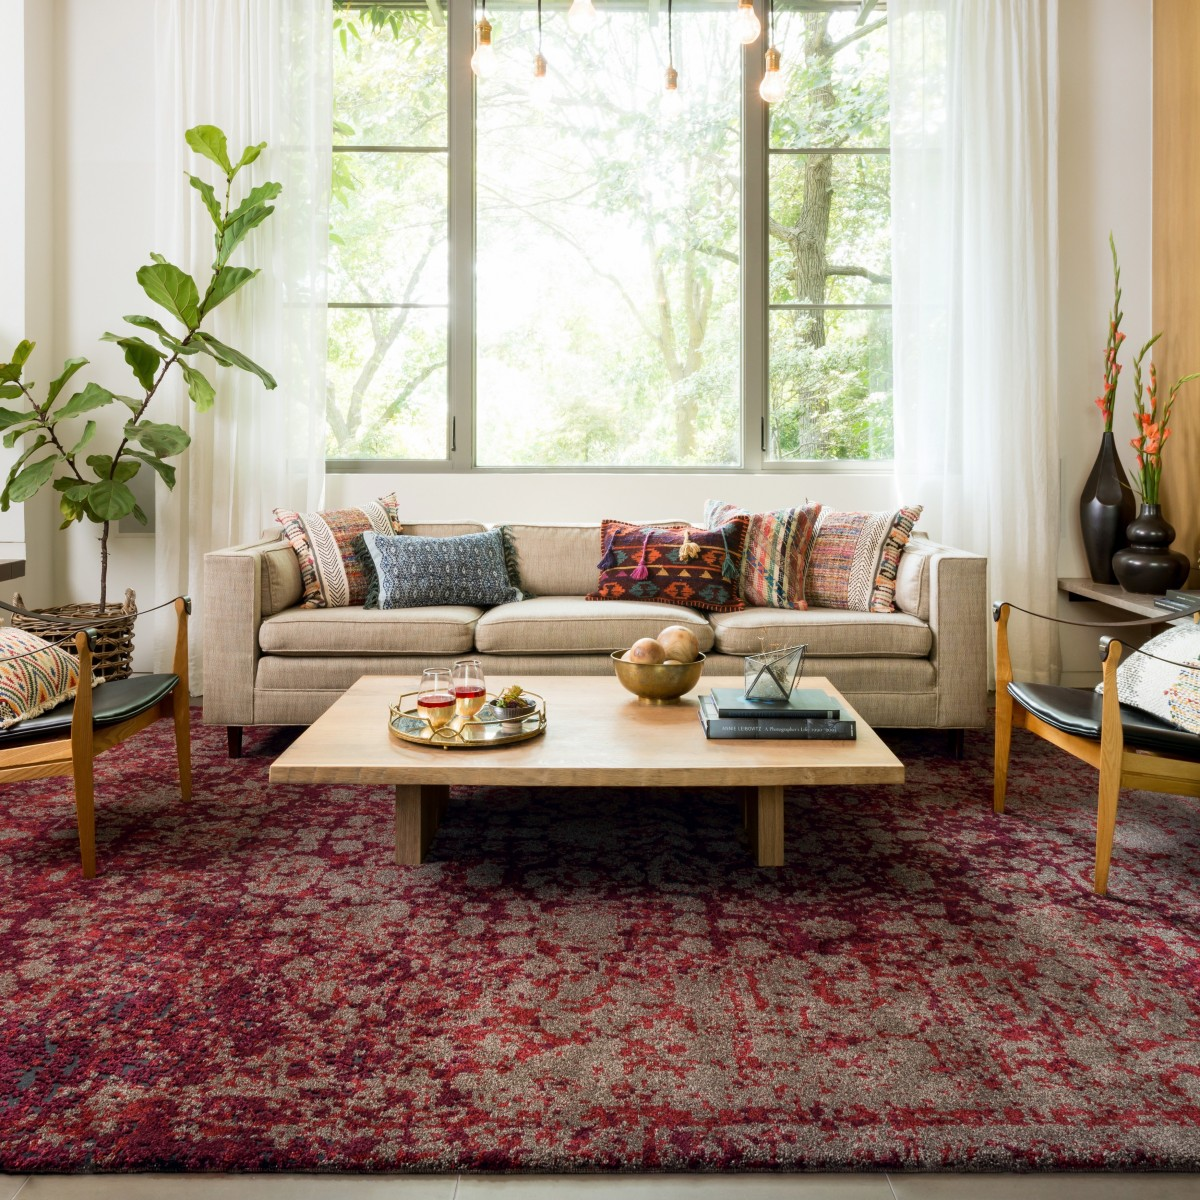 One Quick And Easy Way To Give A Room Makeover Is Add An Area Rug Well Placed Can Change The Feeling Of Any E But It S Important Choose